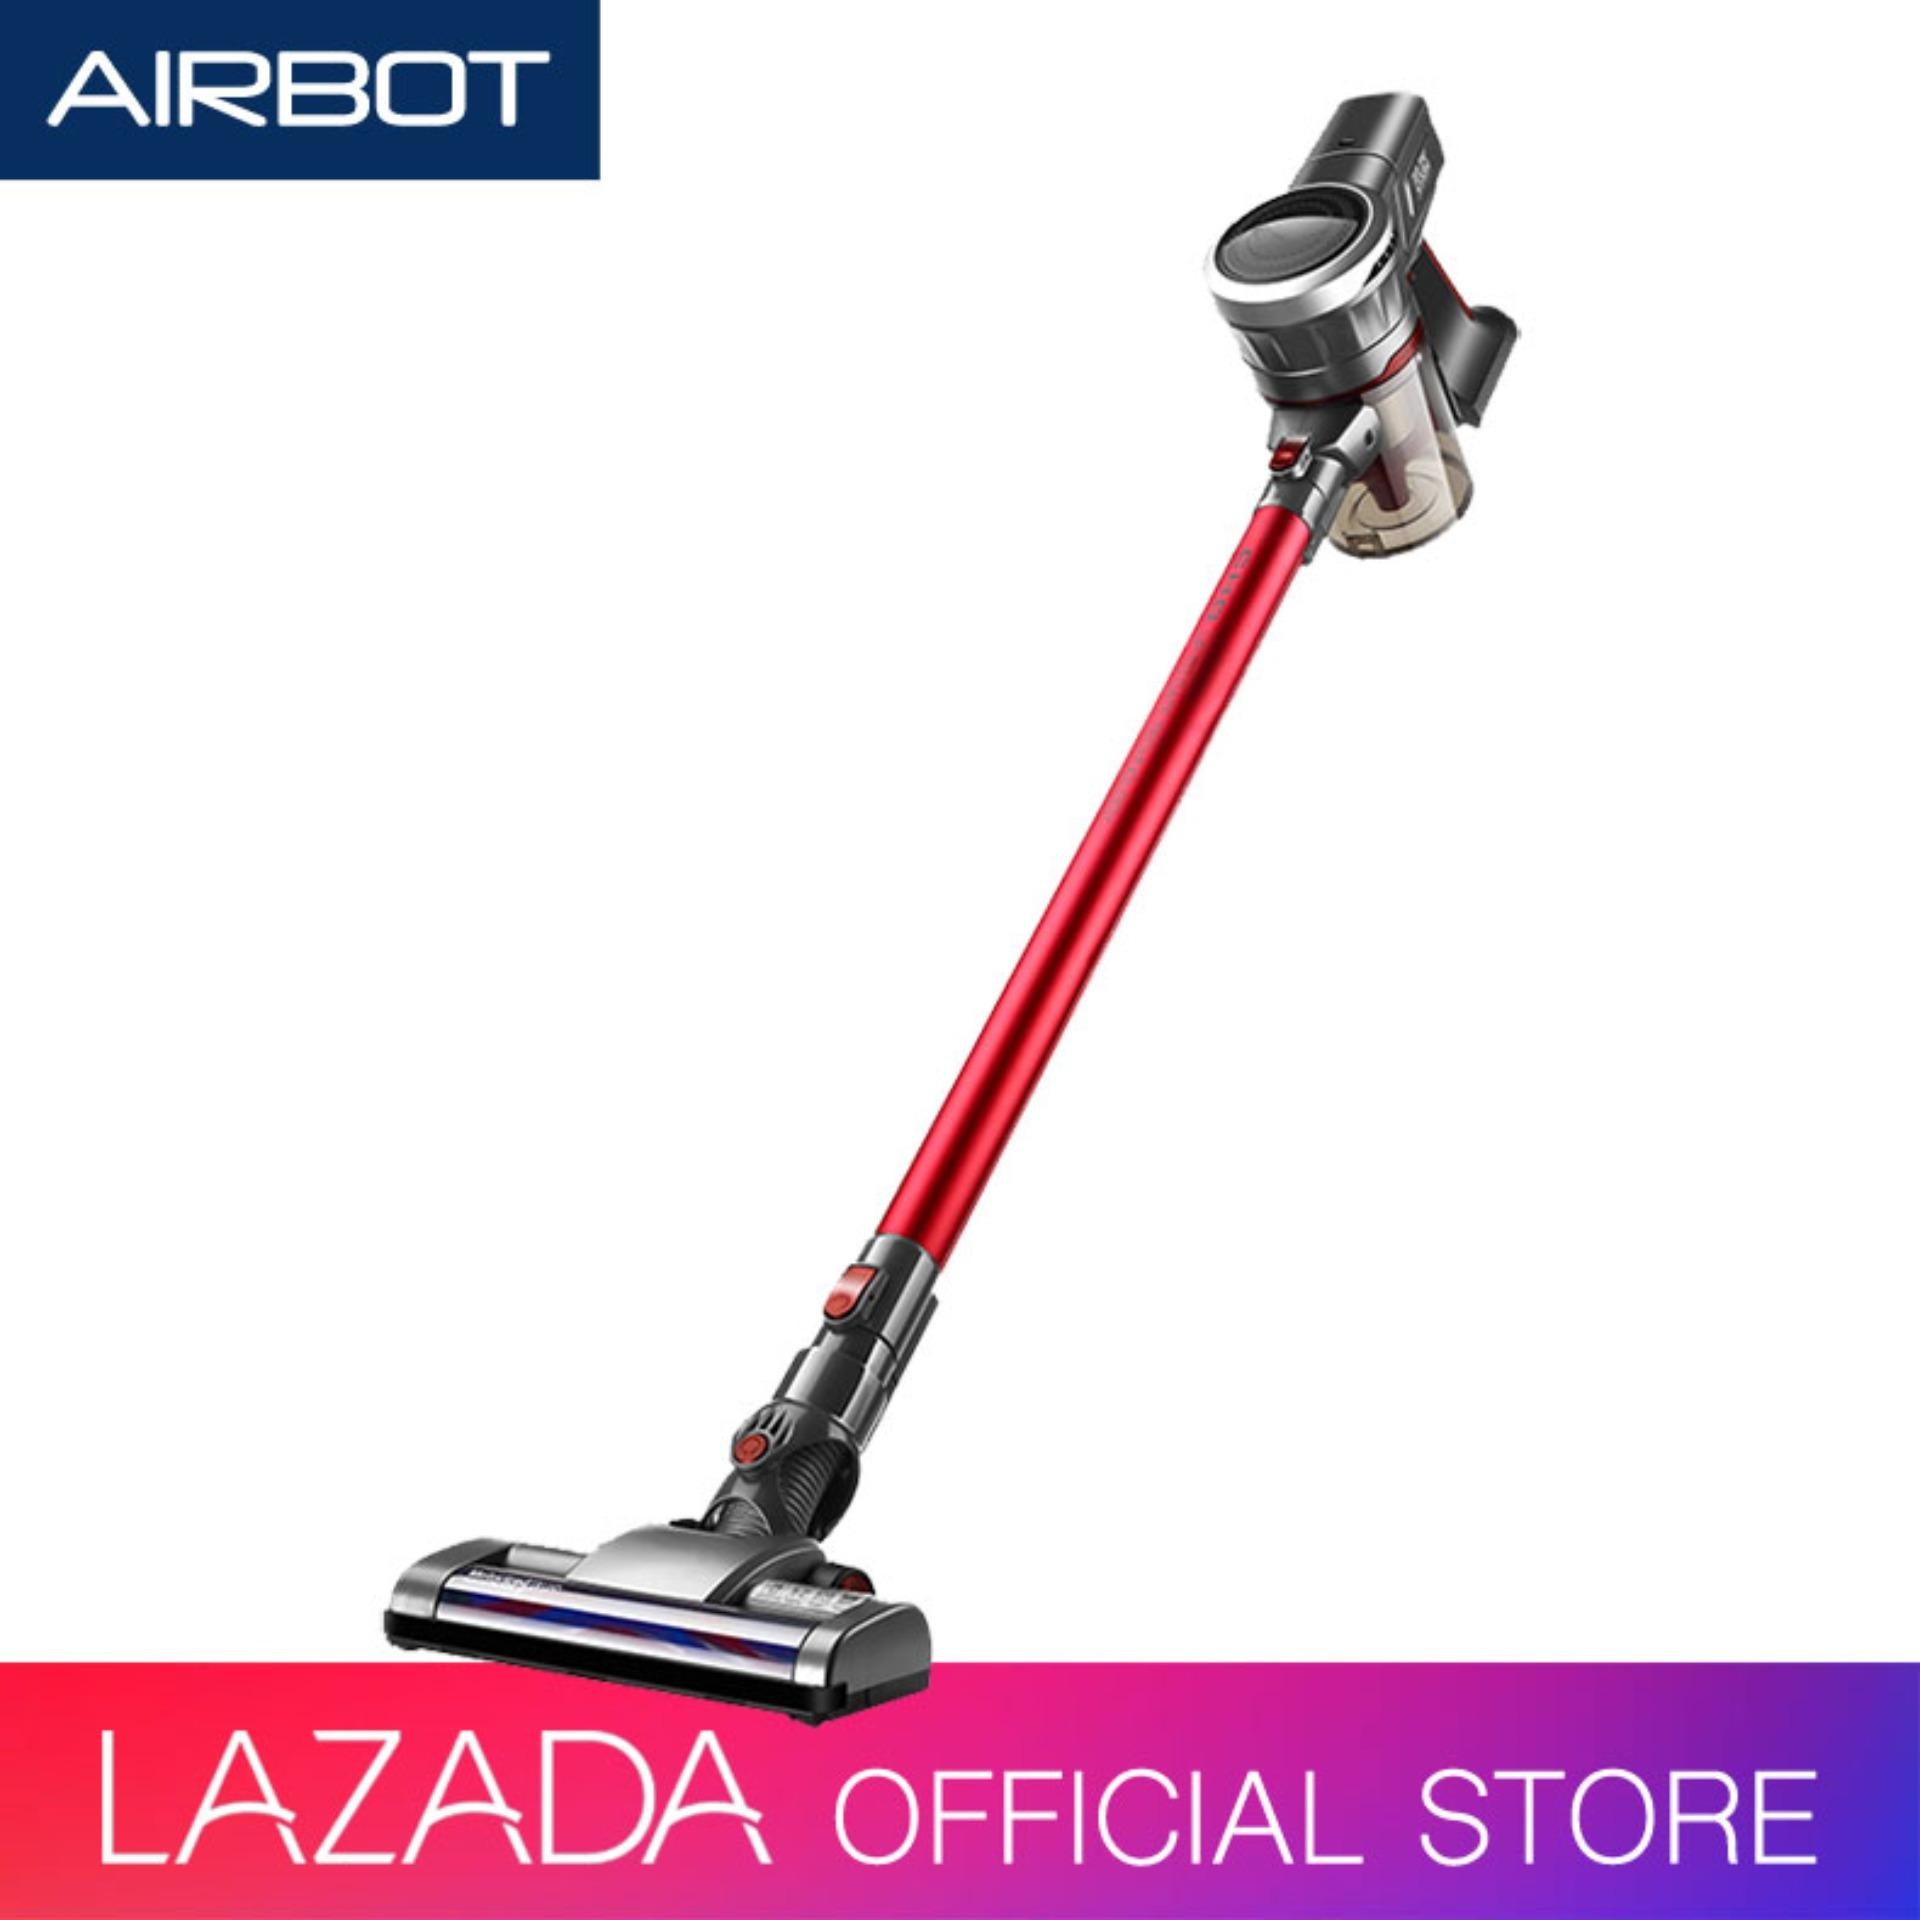 Airbot Supersonics Fluffy Cordless Vacuum Cleaner Stick Handheld Mode for Floor Car Carpet Sofa Mattress Curtain Keyboard